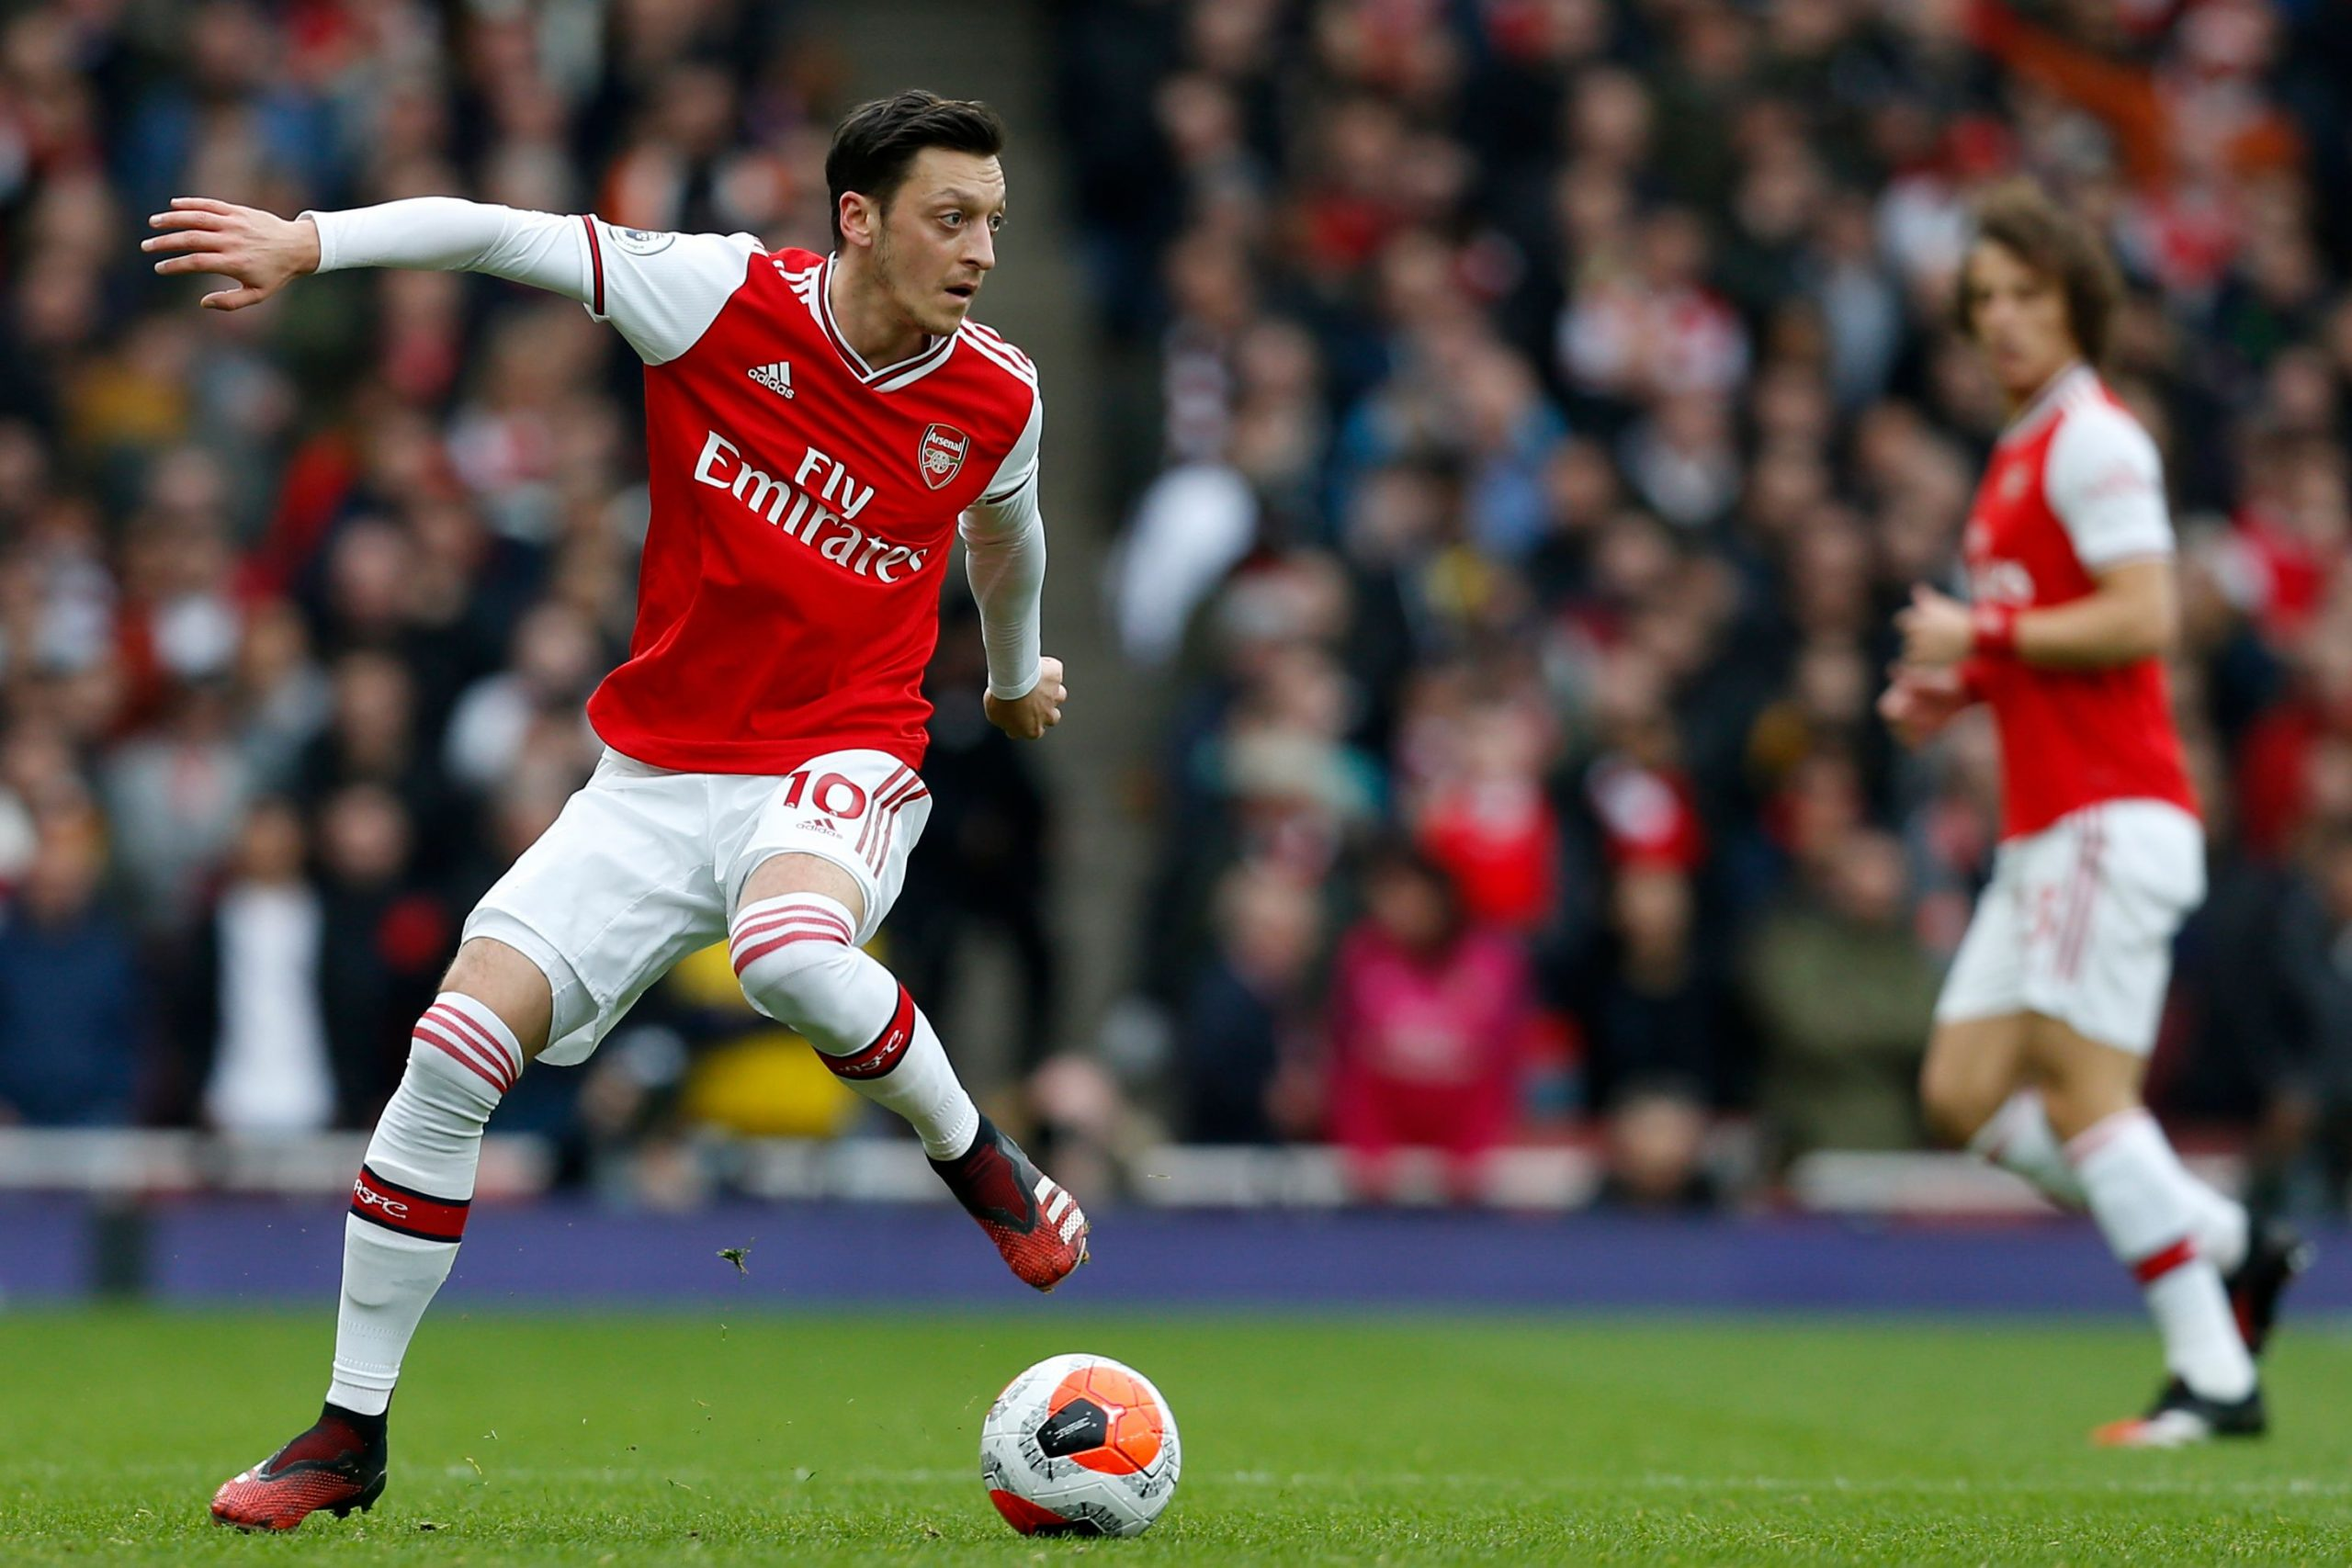 Arsenal's German midfielder Mesut Ozil controls the ball during the English Premier League football match between Arsenal and West Ham at the Emirates Stadium in London on March 7, 2020.